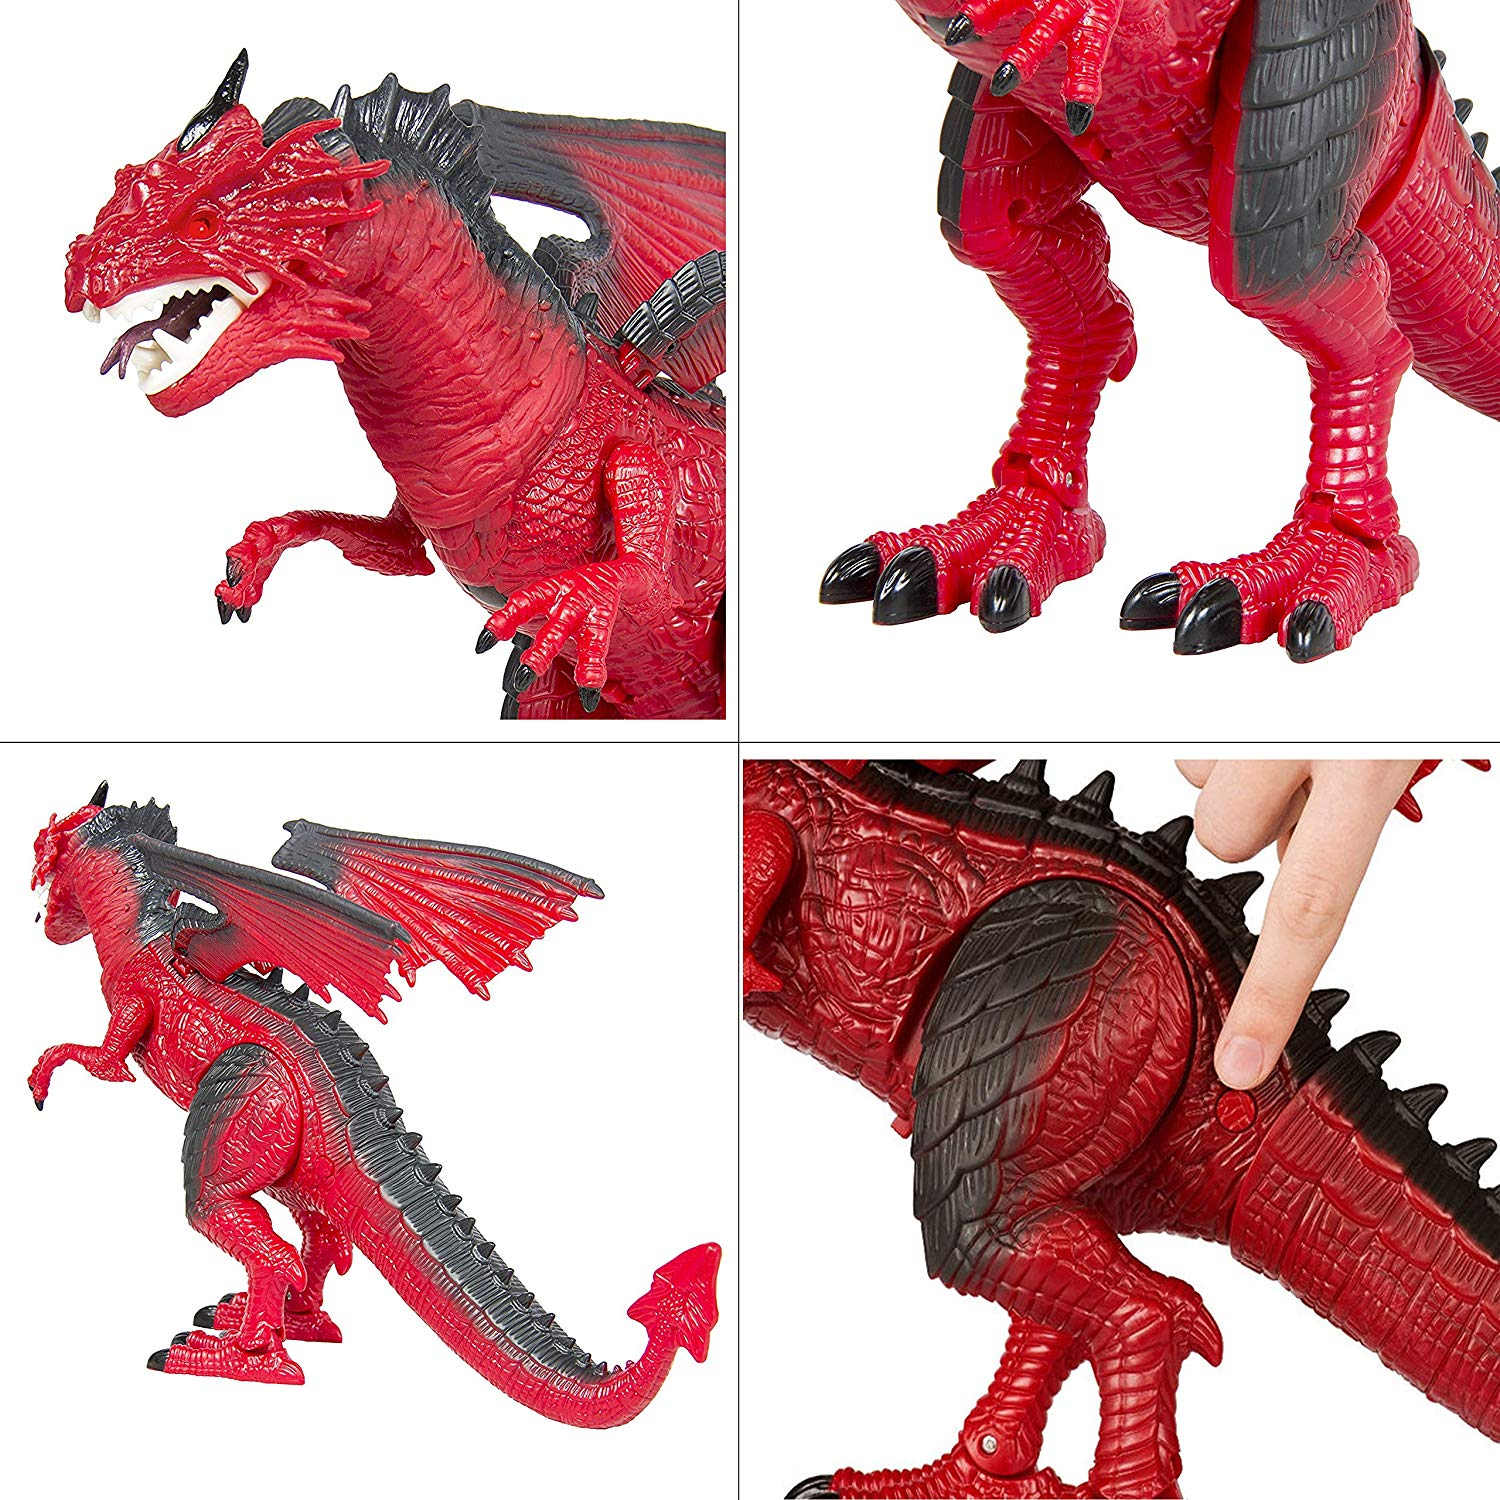 Dino Planet Remote Control R/C Walking Dinosaur Toy with Shaking Head, Light Up Eyes and Sounds (B/O Dragon)